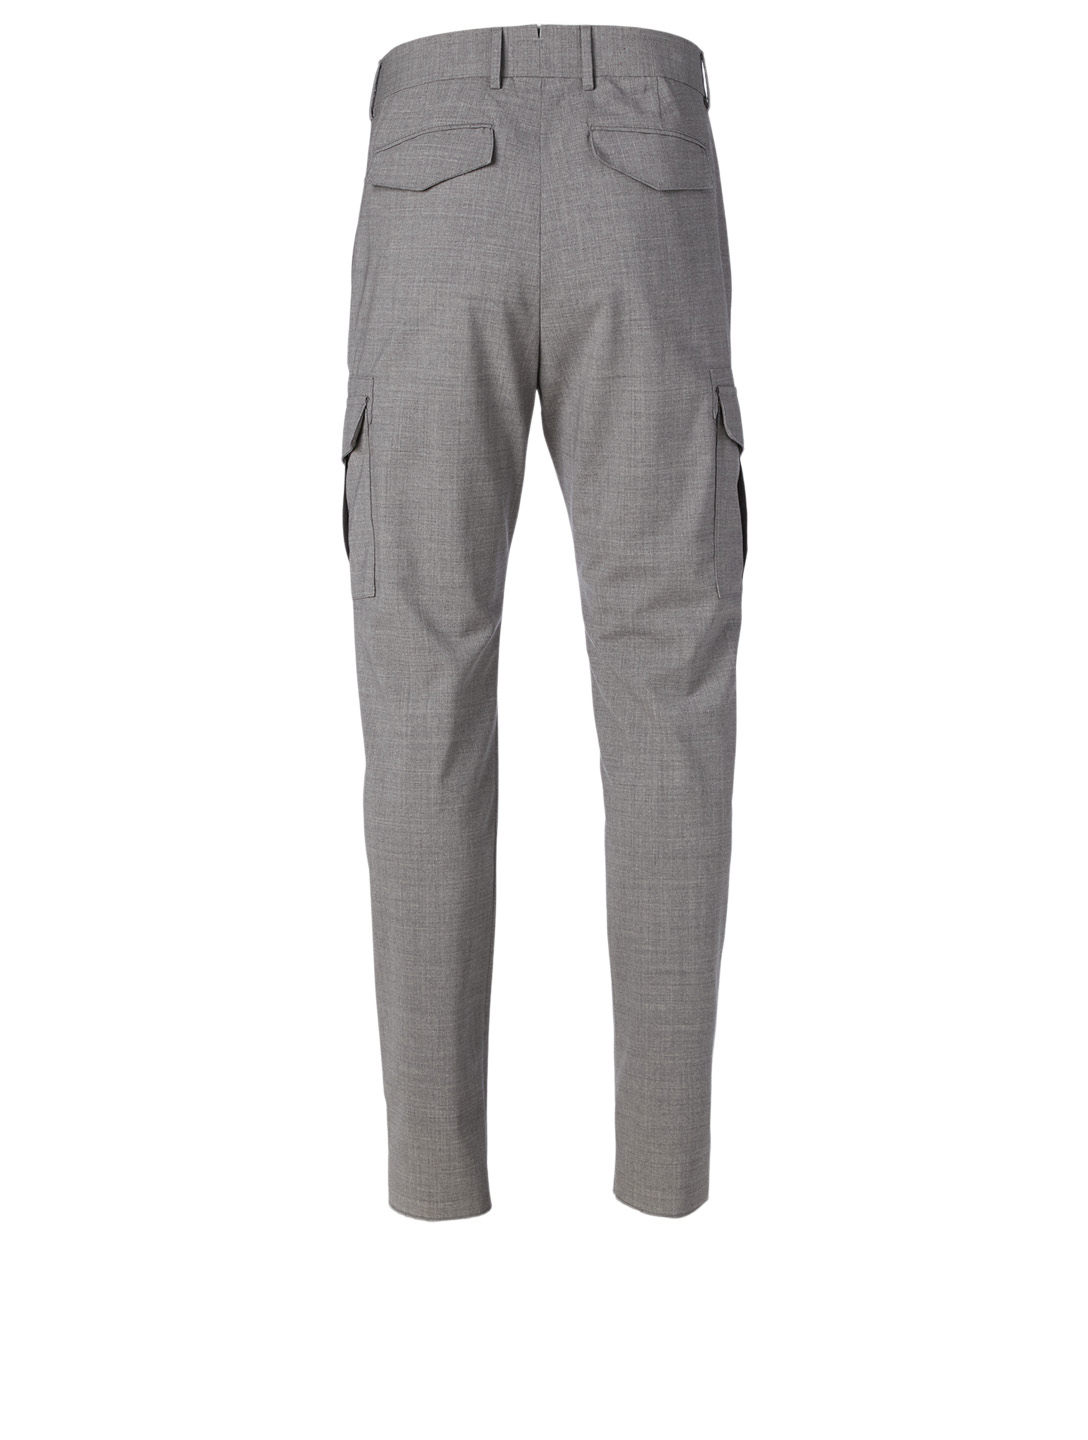 ELEVENTY Stretch Wool Cargo Pants Men's Grey